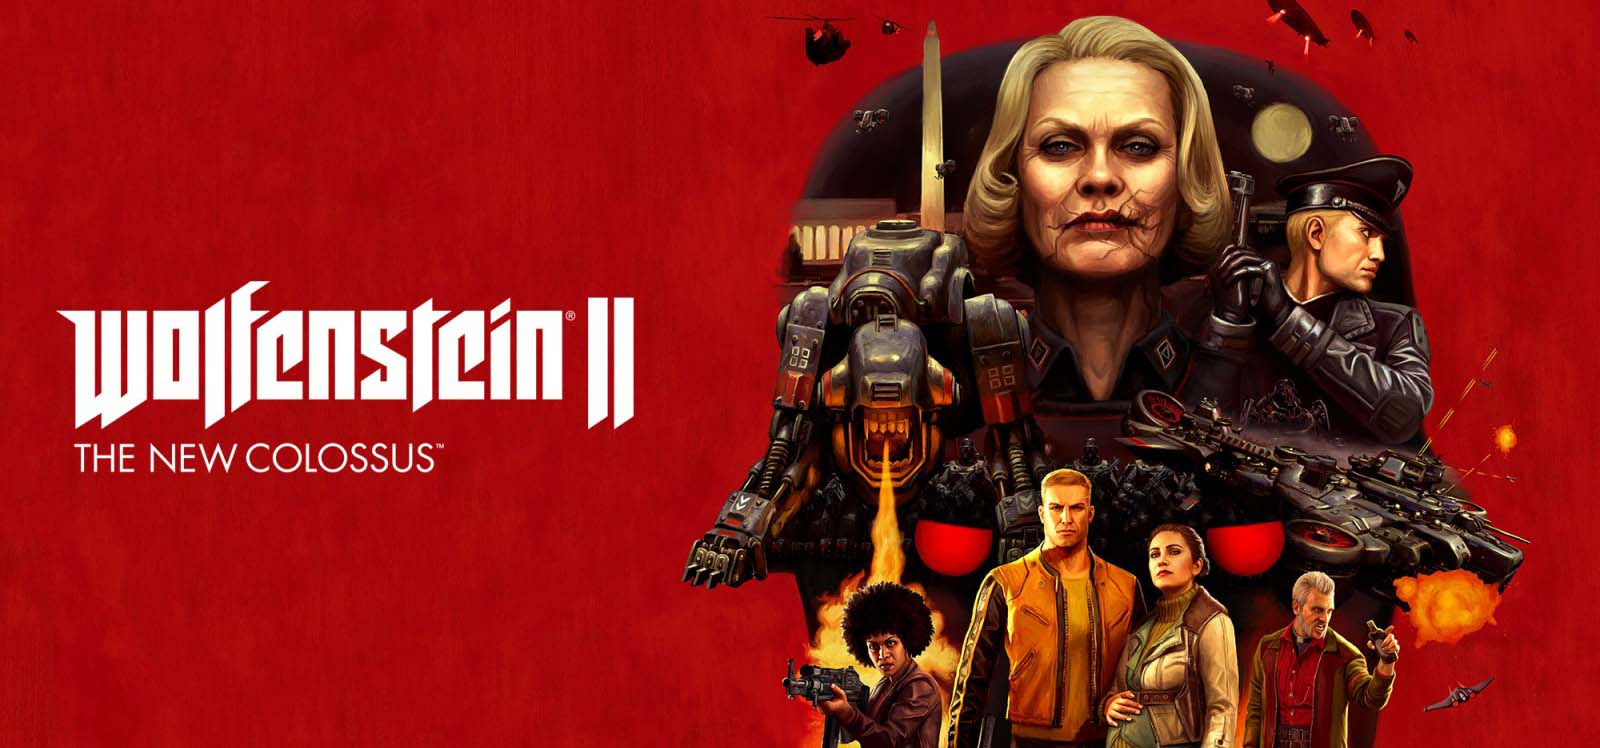 Wolfenstein 2 The New Colossus Nintendo Switch